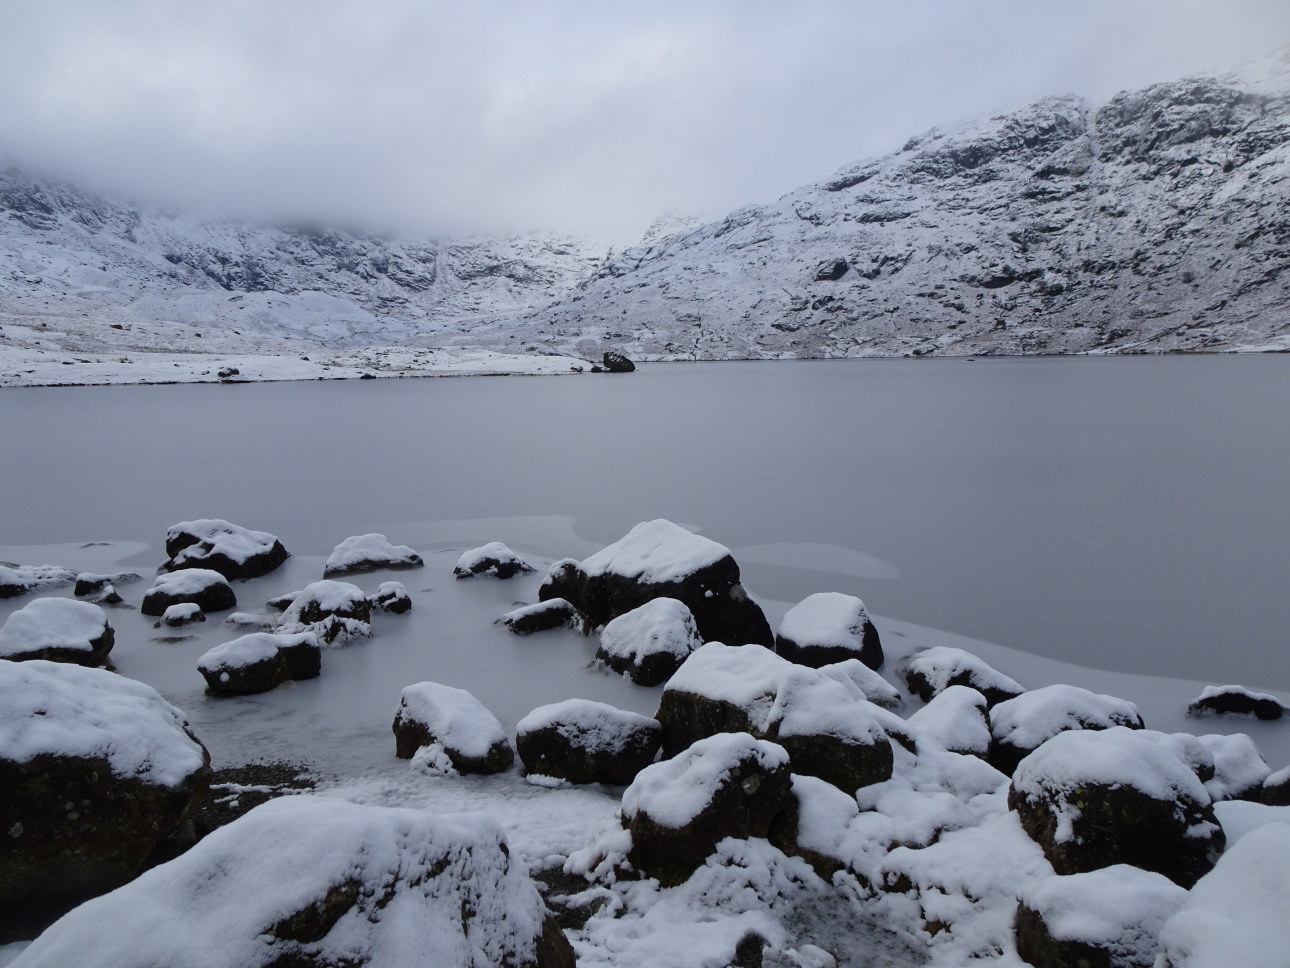 Easedale Tarn, iced over and snowclad.